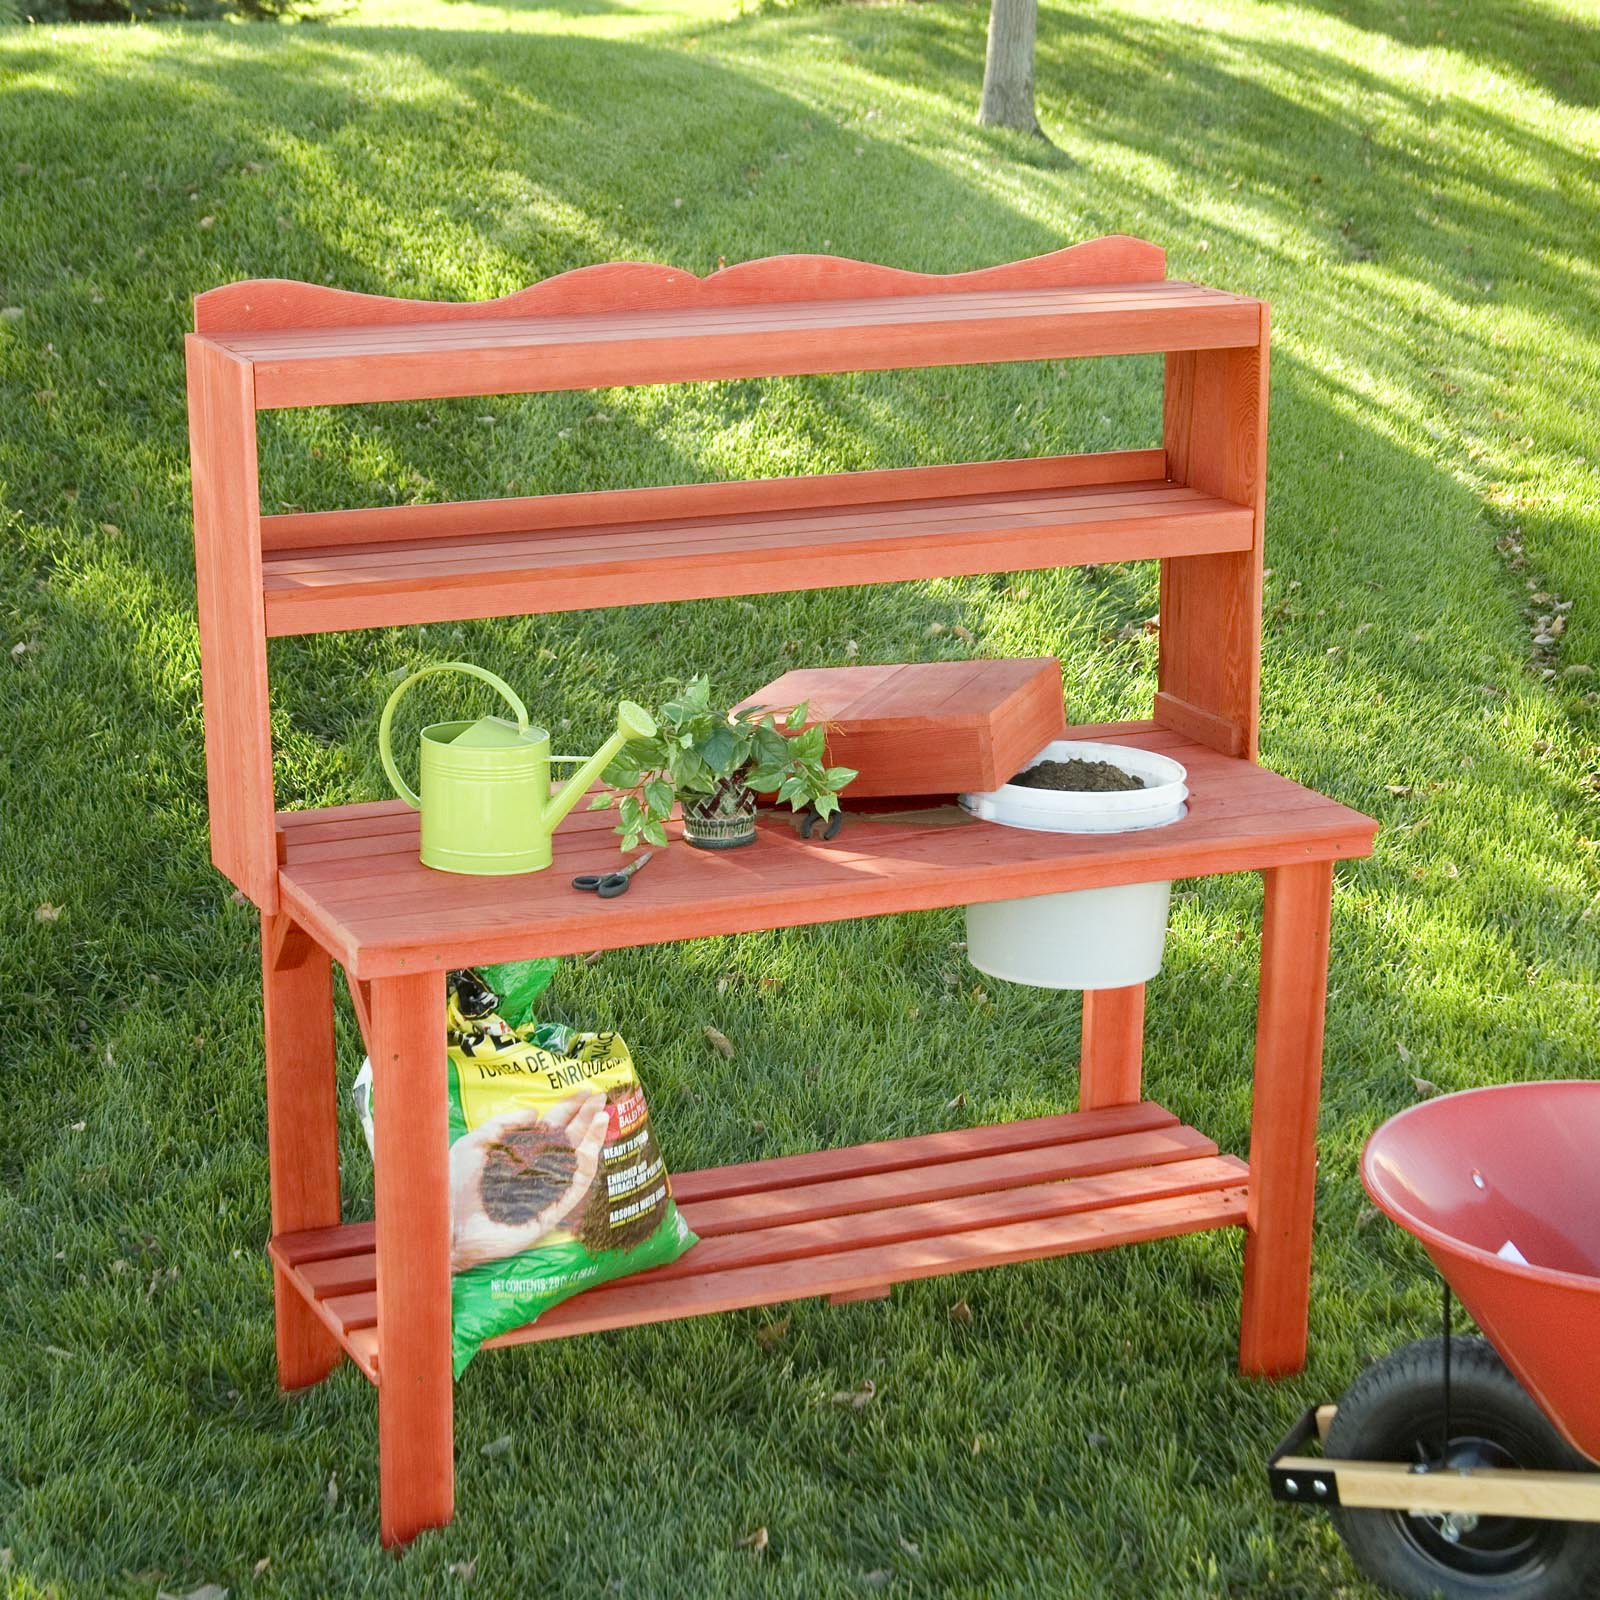 Wood Country Master Gardener's Cedar Wood Potting Bench